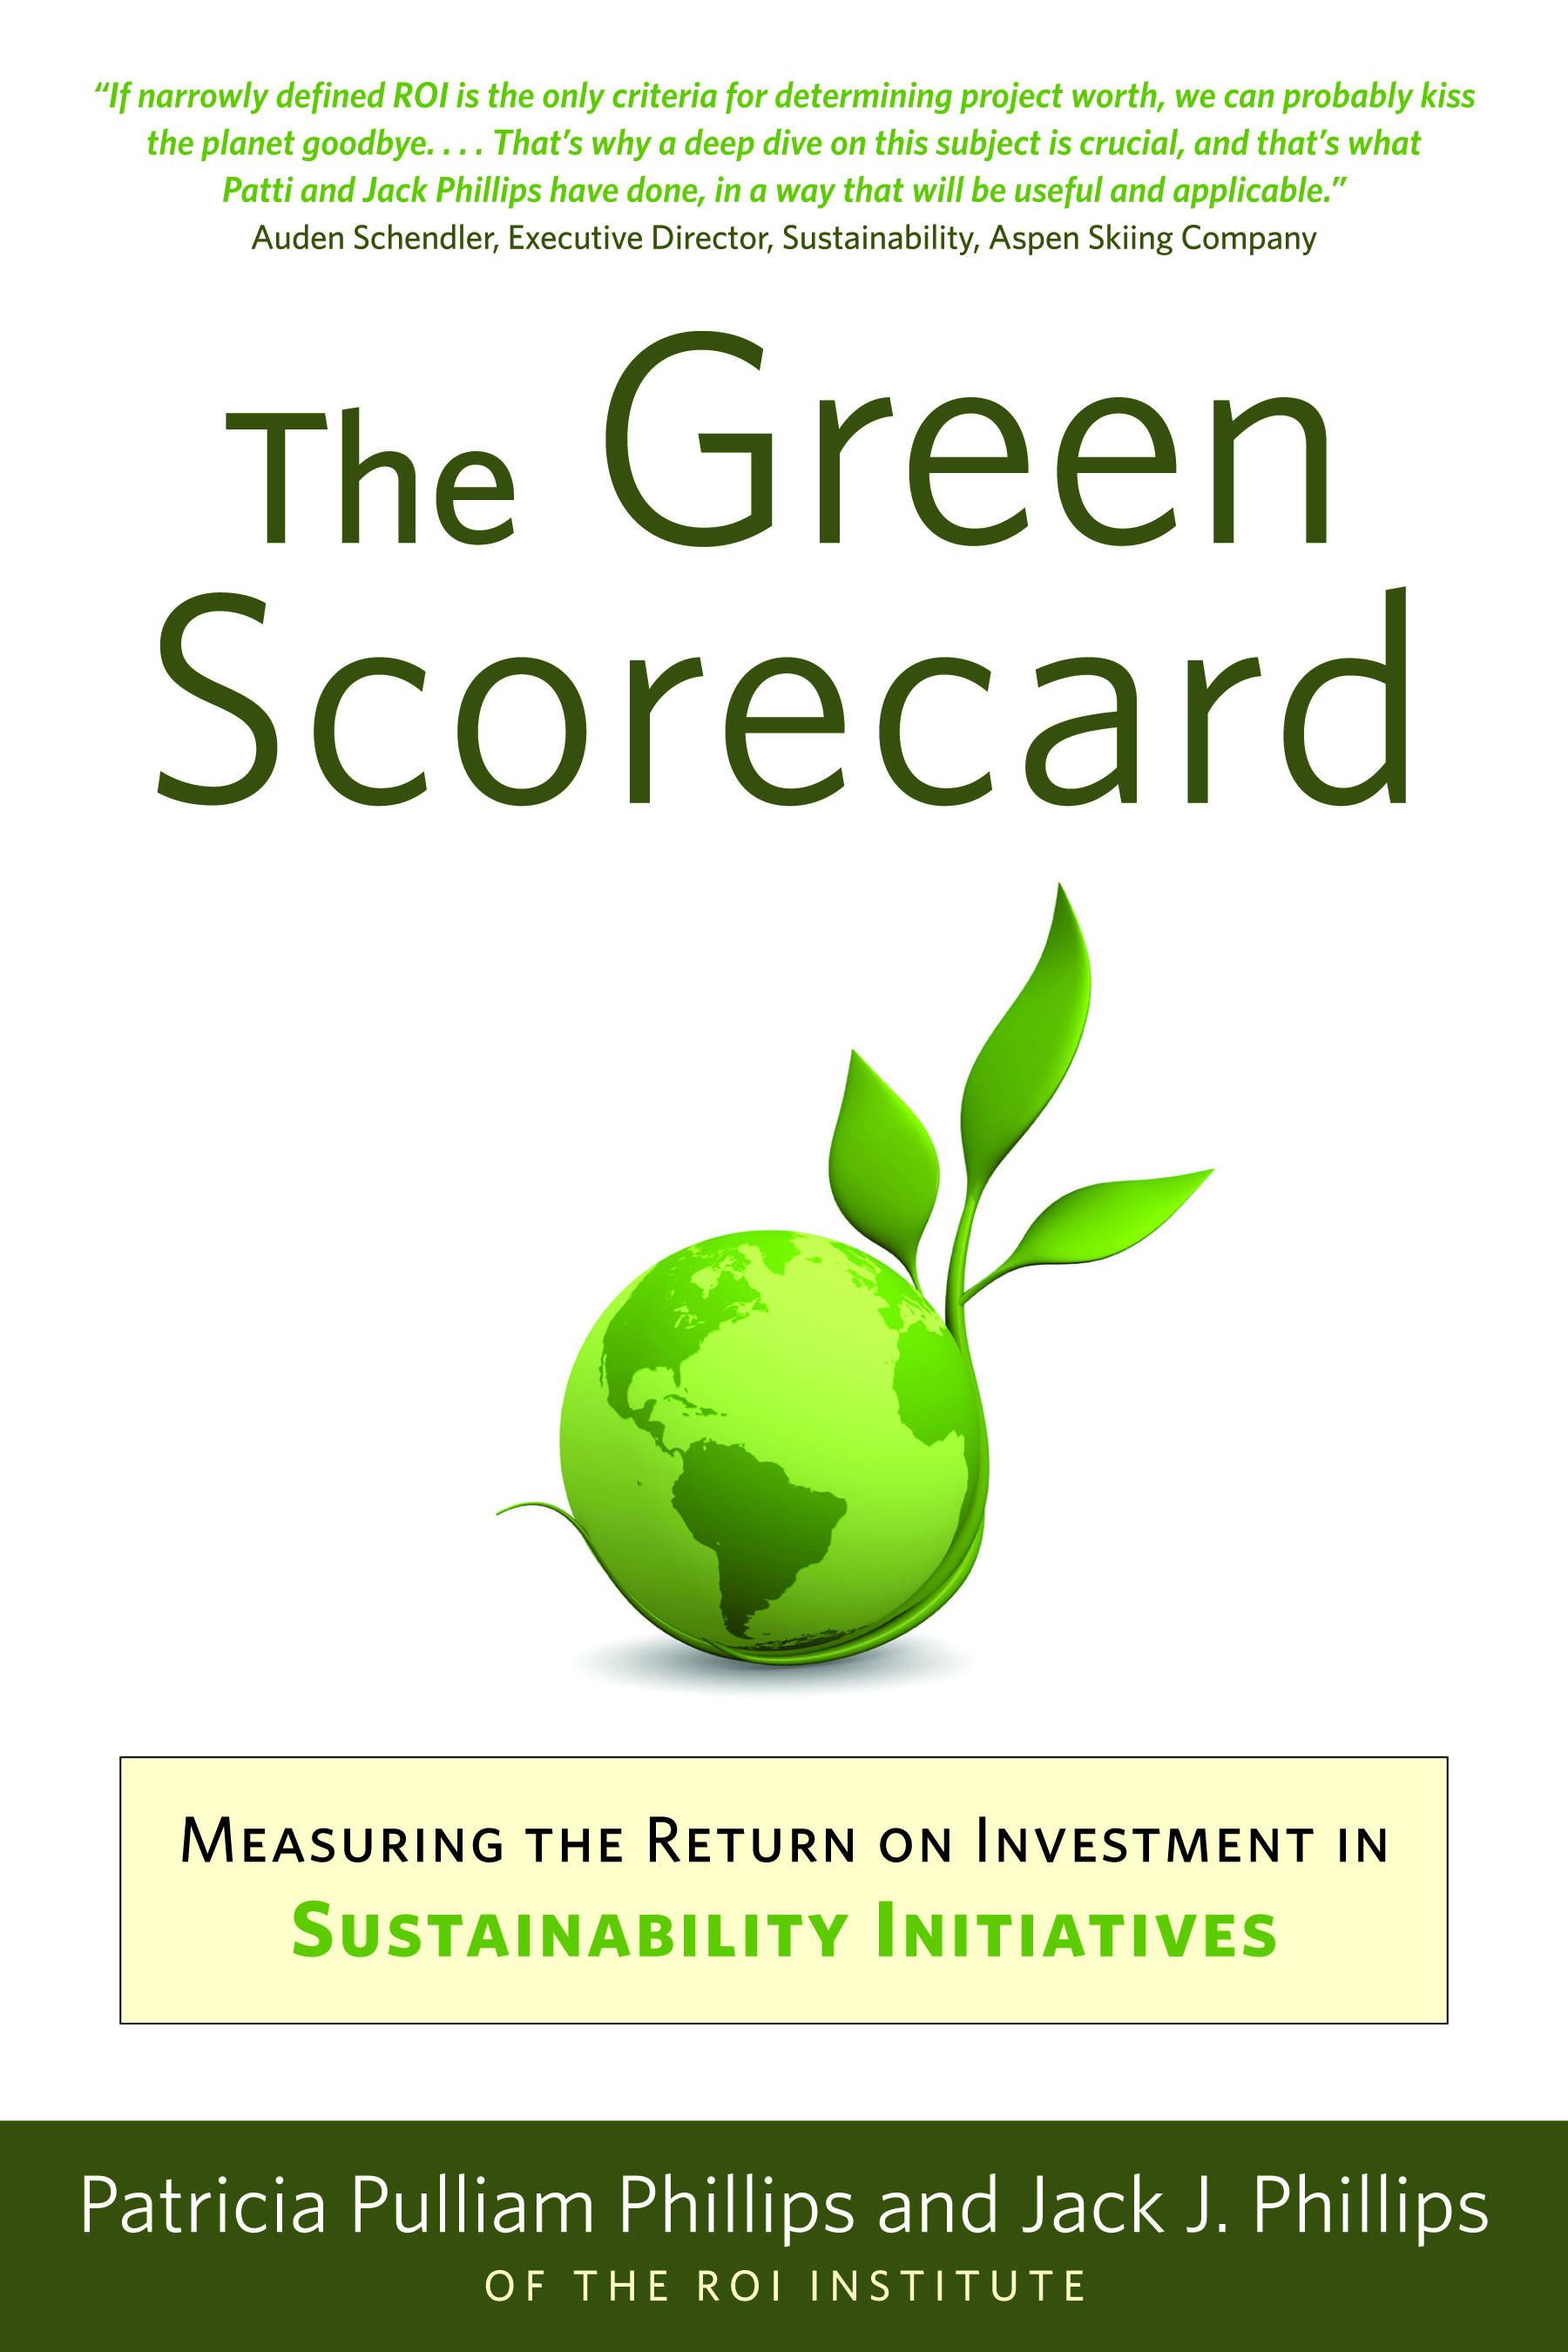 Green Scorecard hi res.jpg